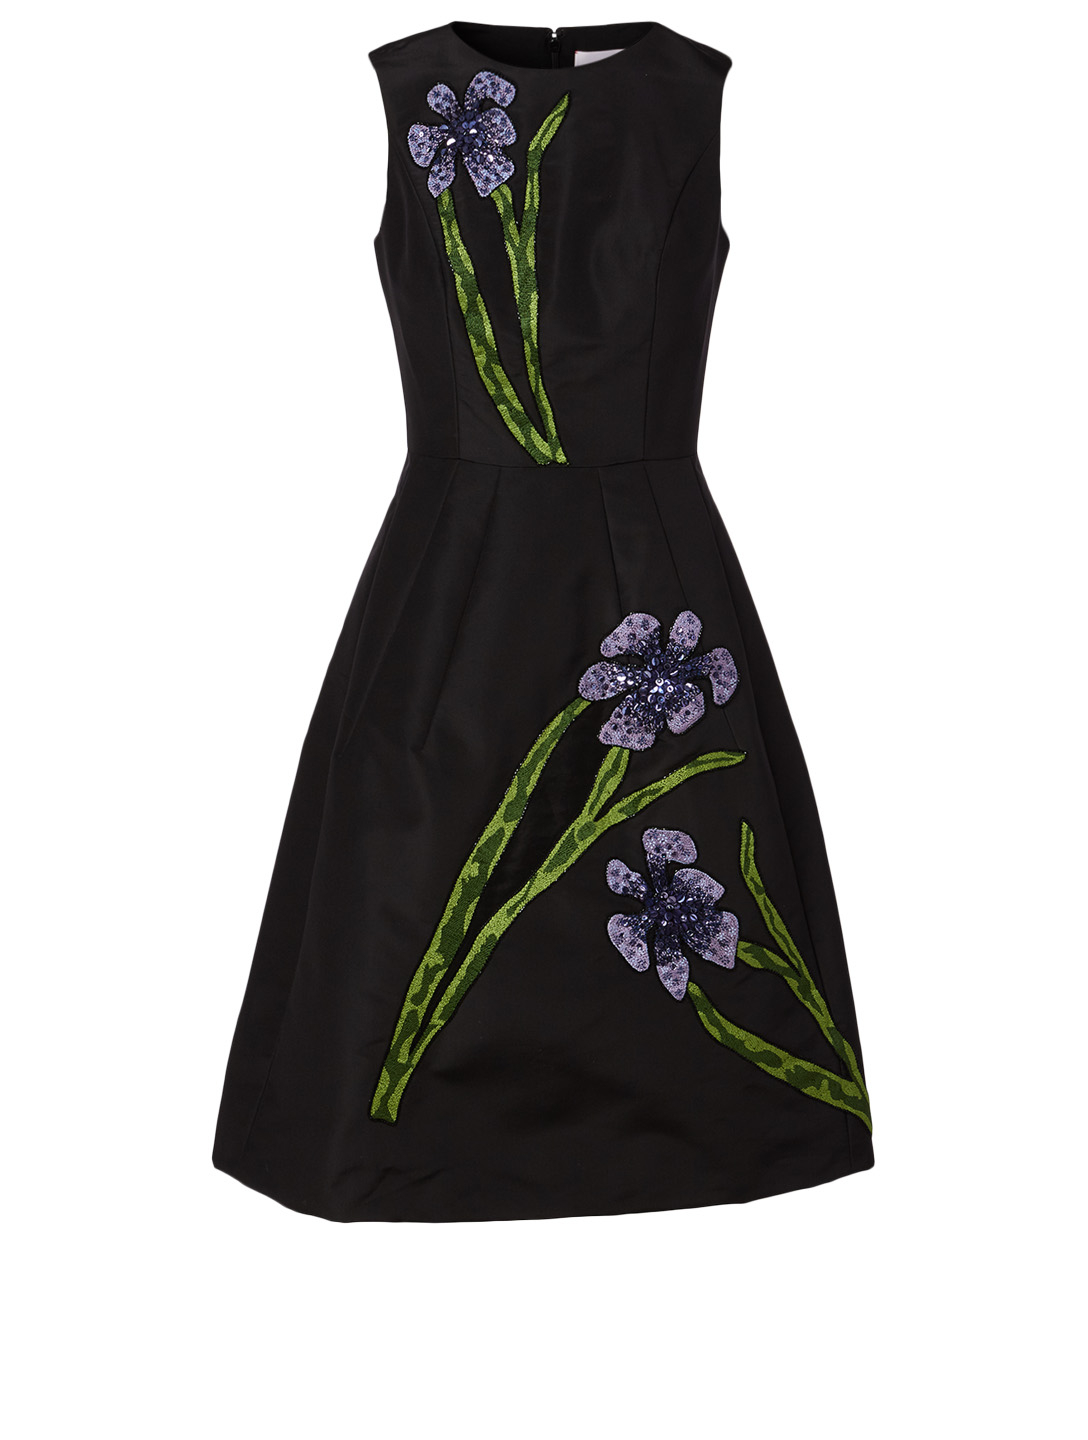 CAROLINA HERRERA Silk Sleeveless Dress Women's Black